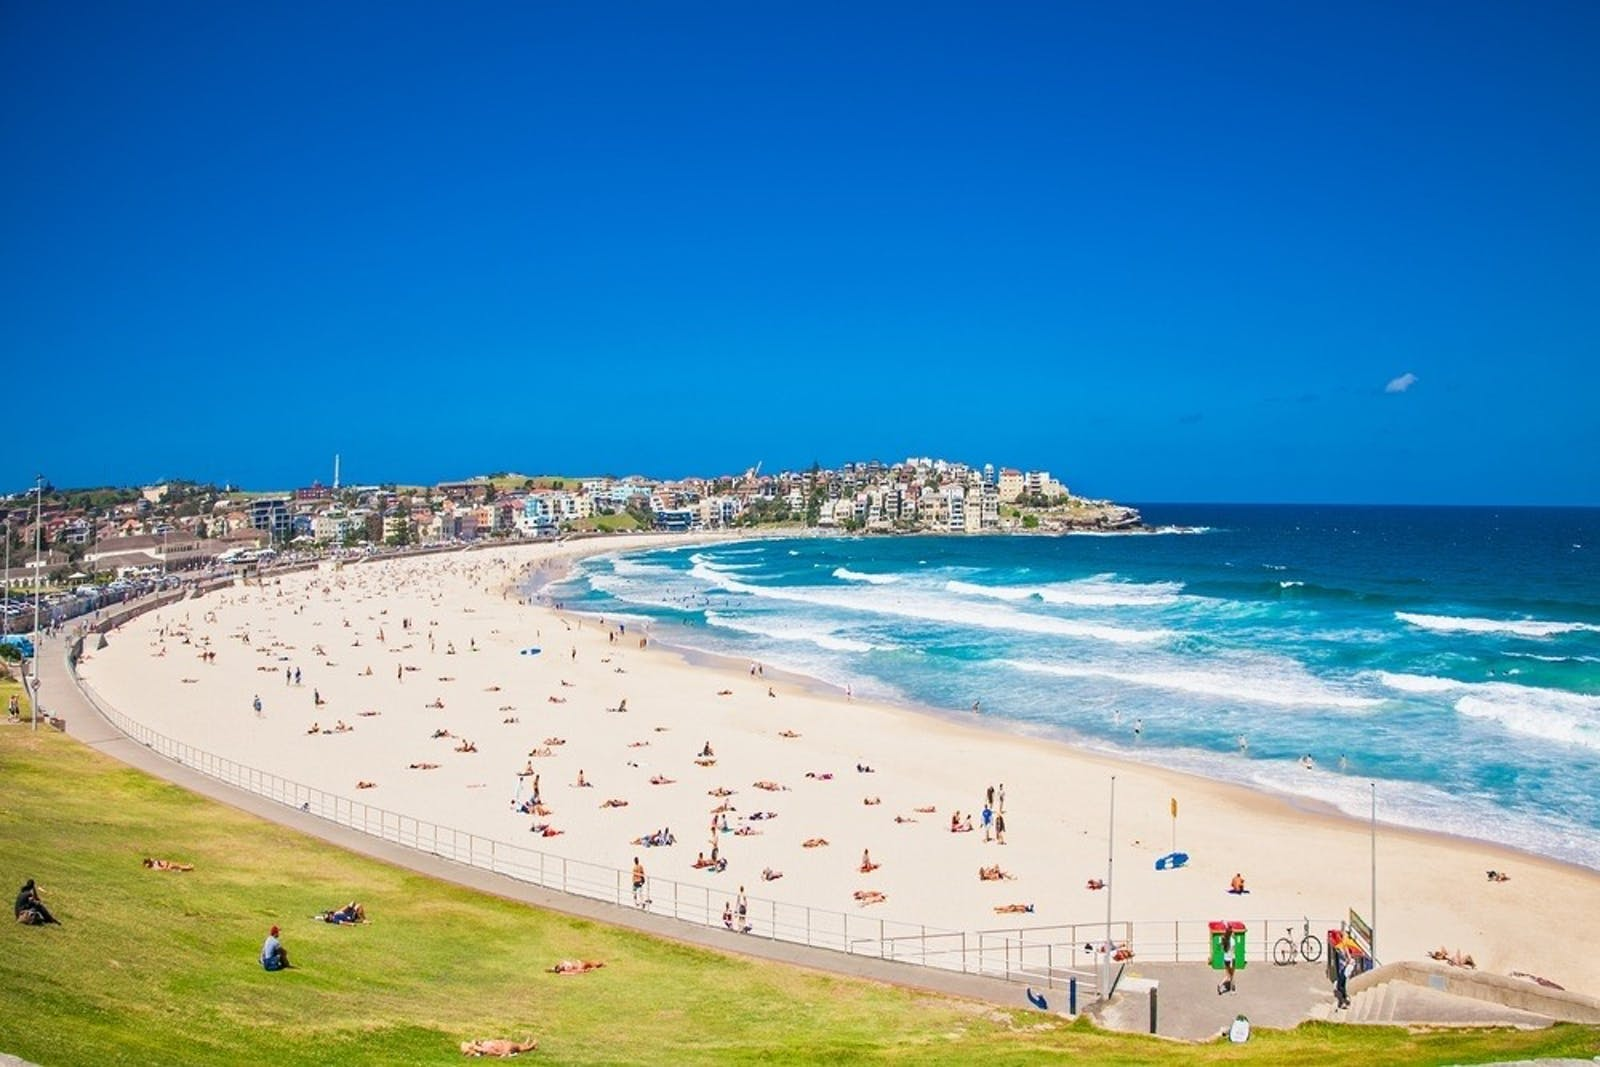 bondi beach sydney new south wales australia